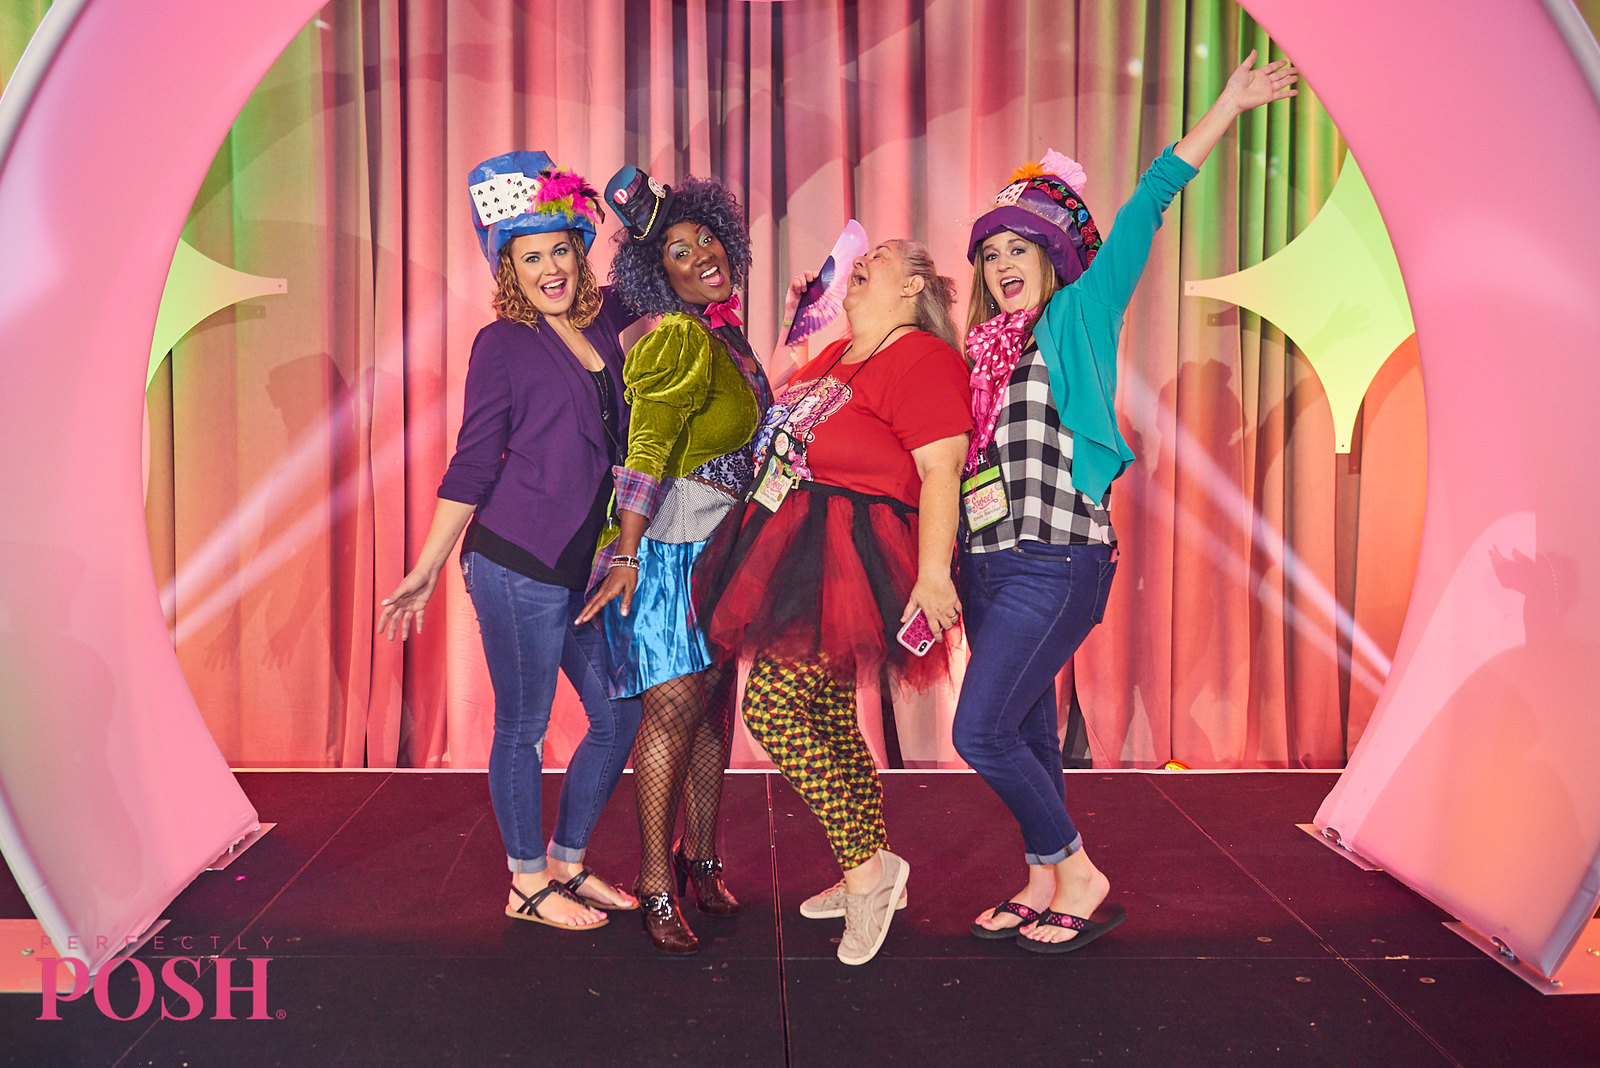 Perfectly Posh Influencers attending the Mad Hatter Tea Party at UnCon 2019 in Indianapolis